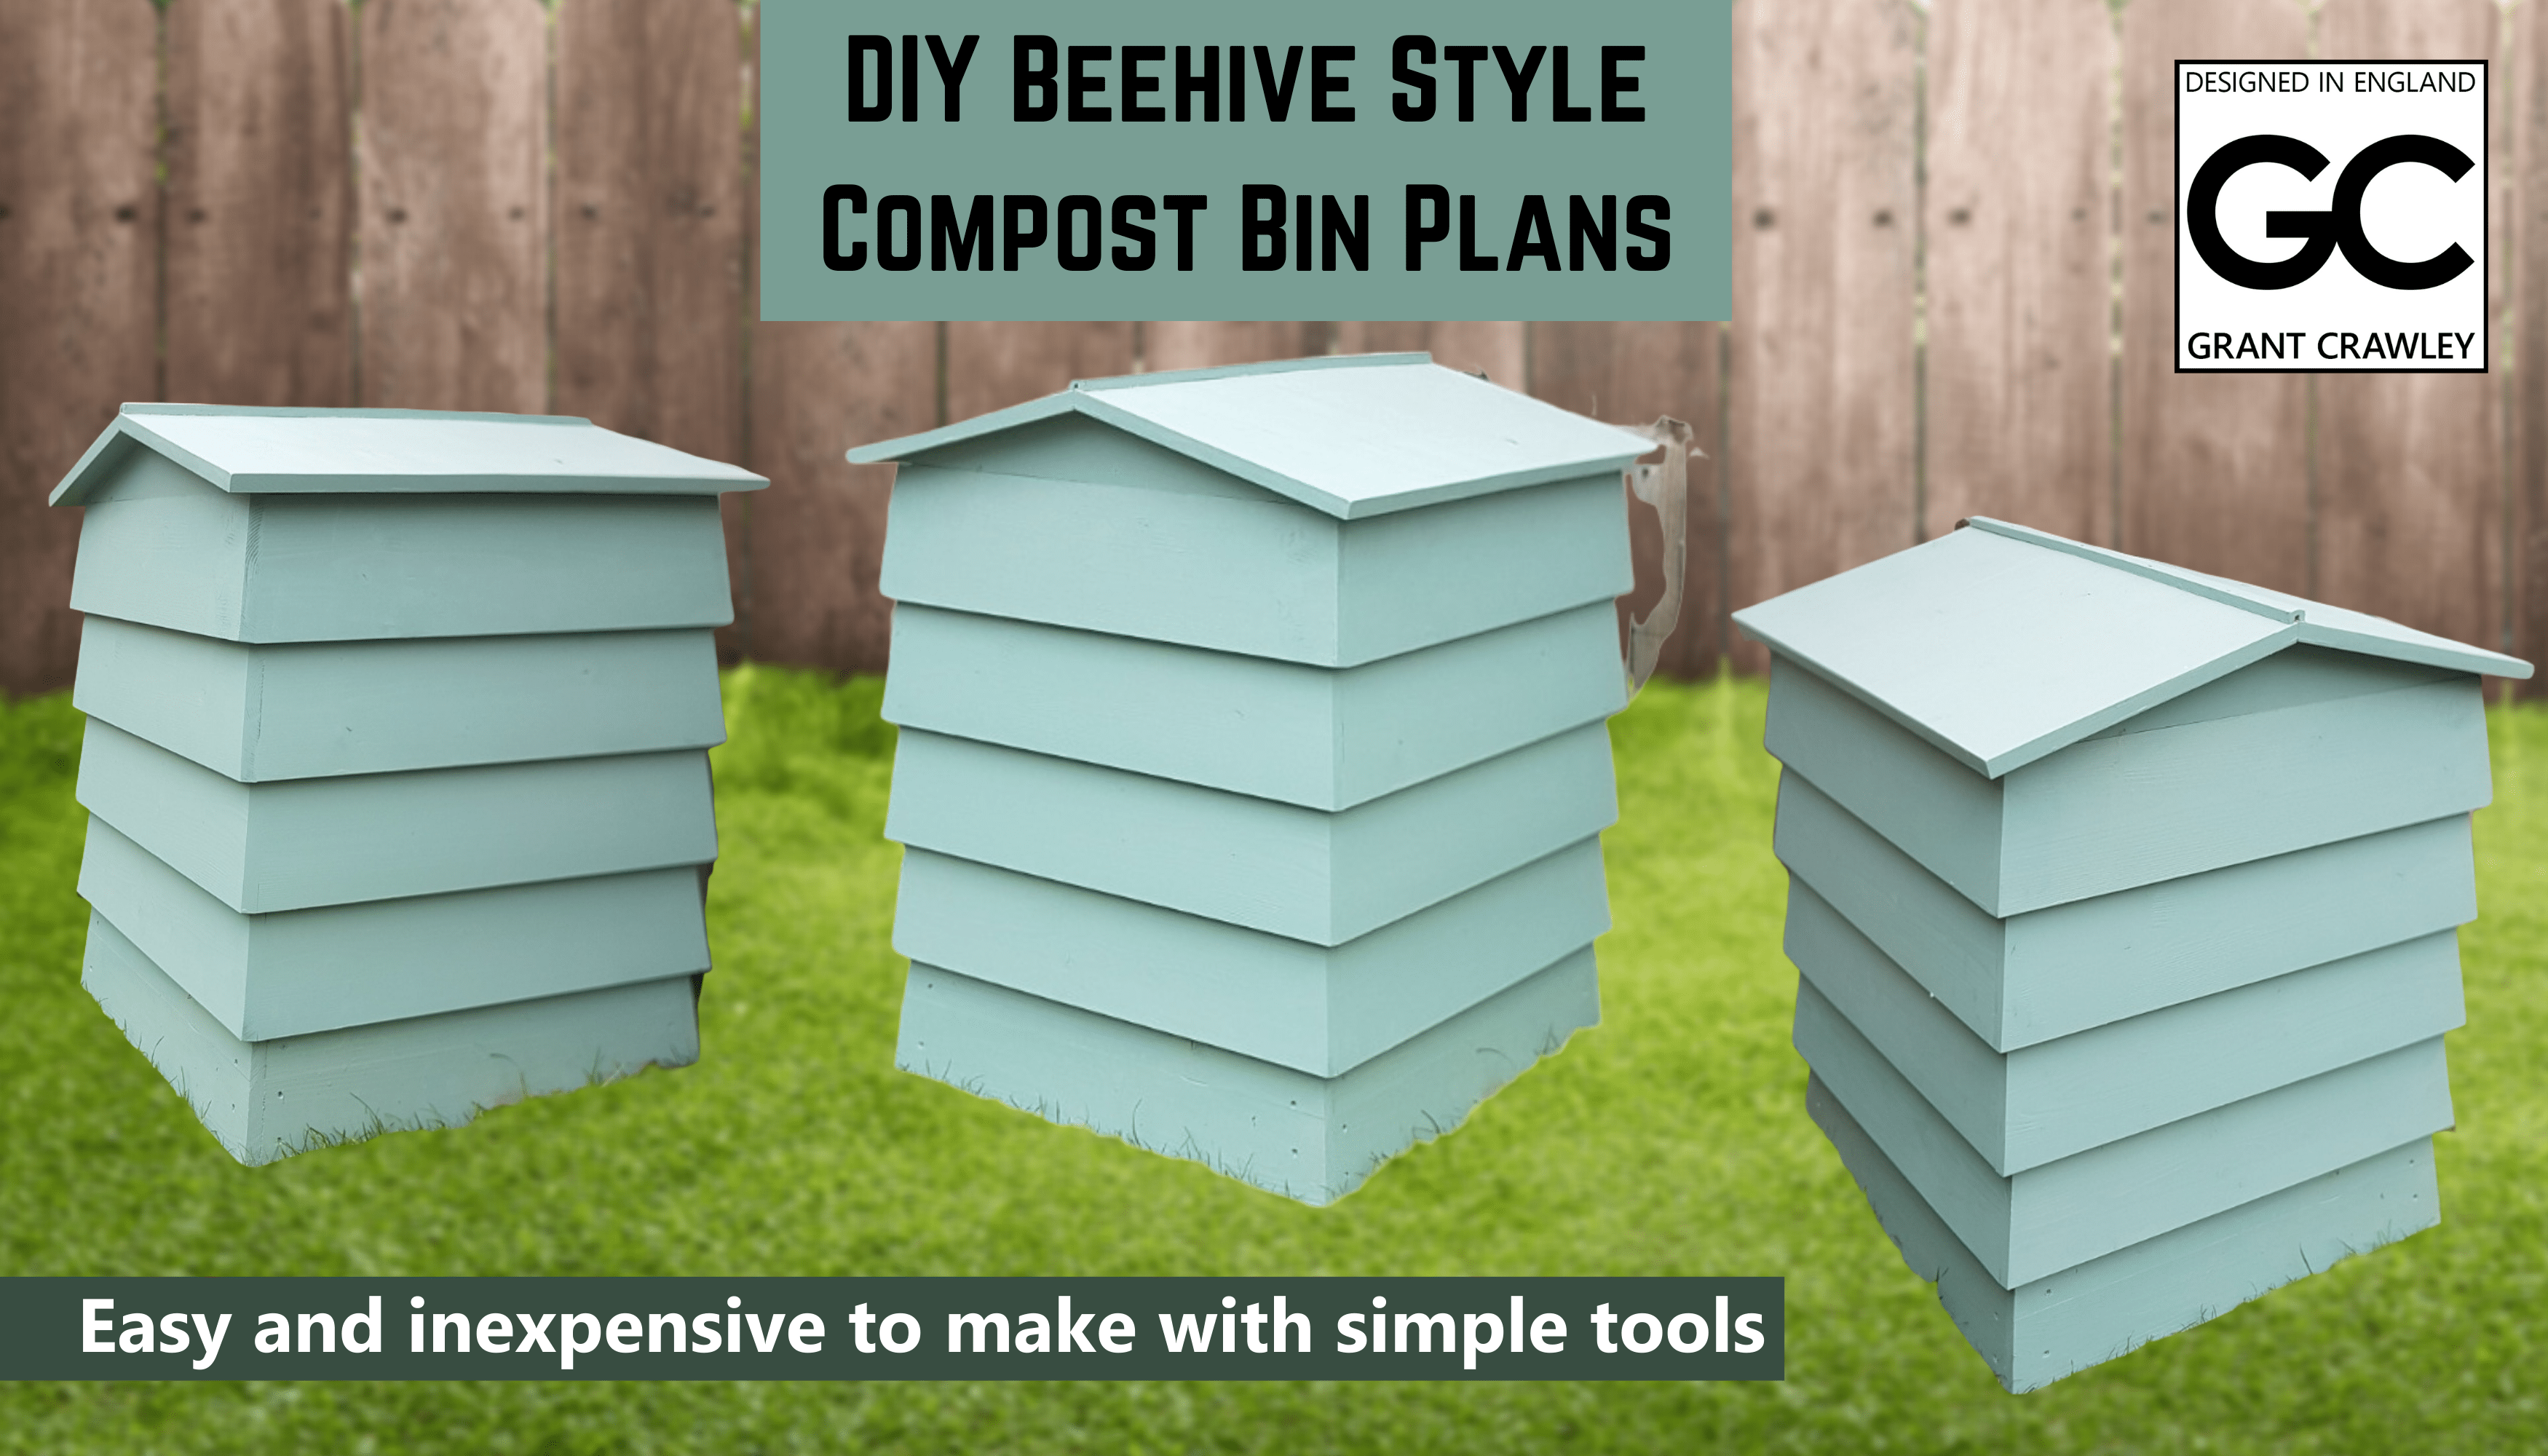 Beehive Style Compost Bin Plans